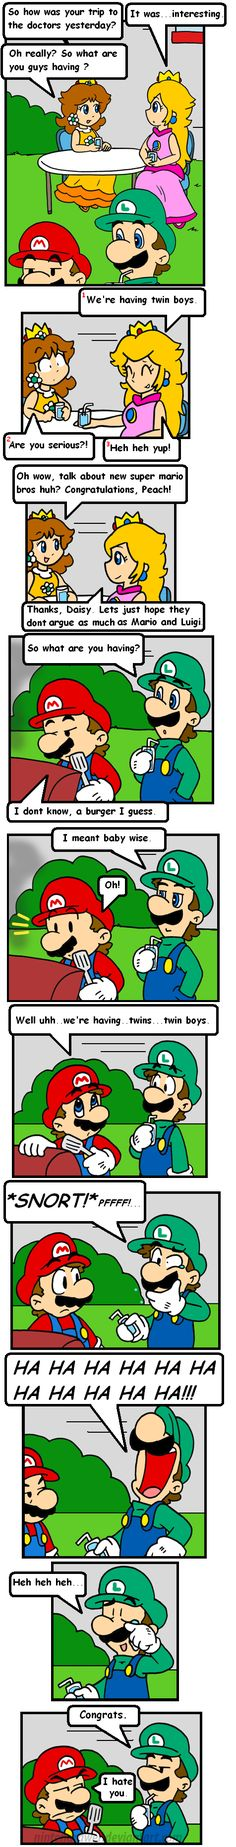 cake in the oven 5 by Nintendrawer Ohhhh I love this *goes into own little fantasy about Mario and Peach being married and stuff*